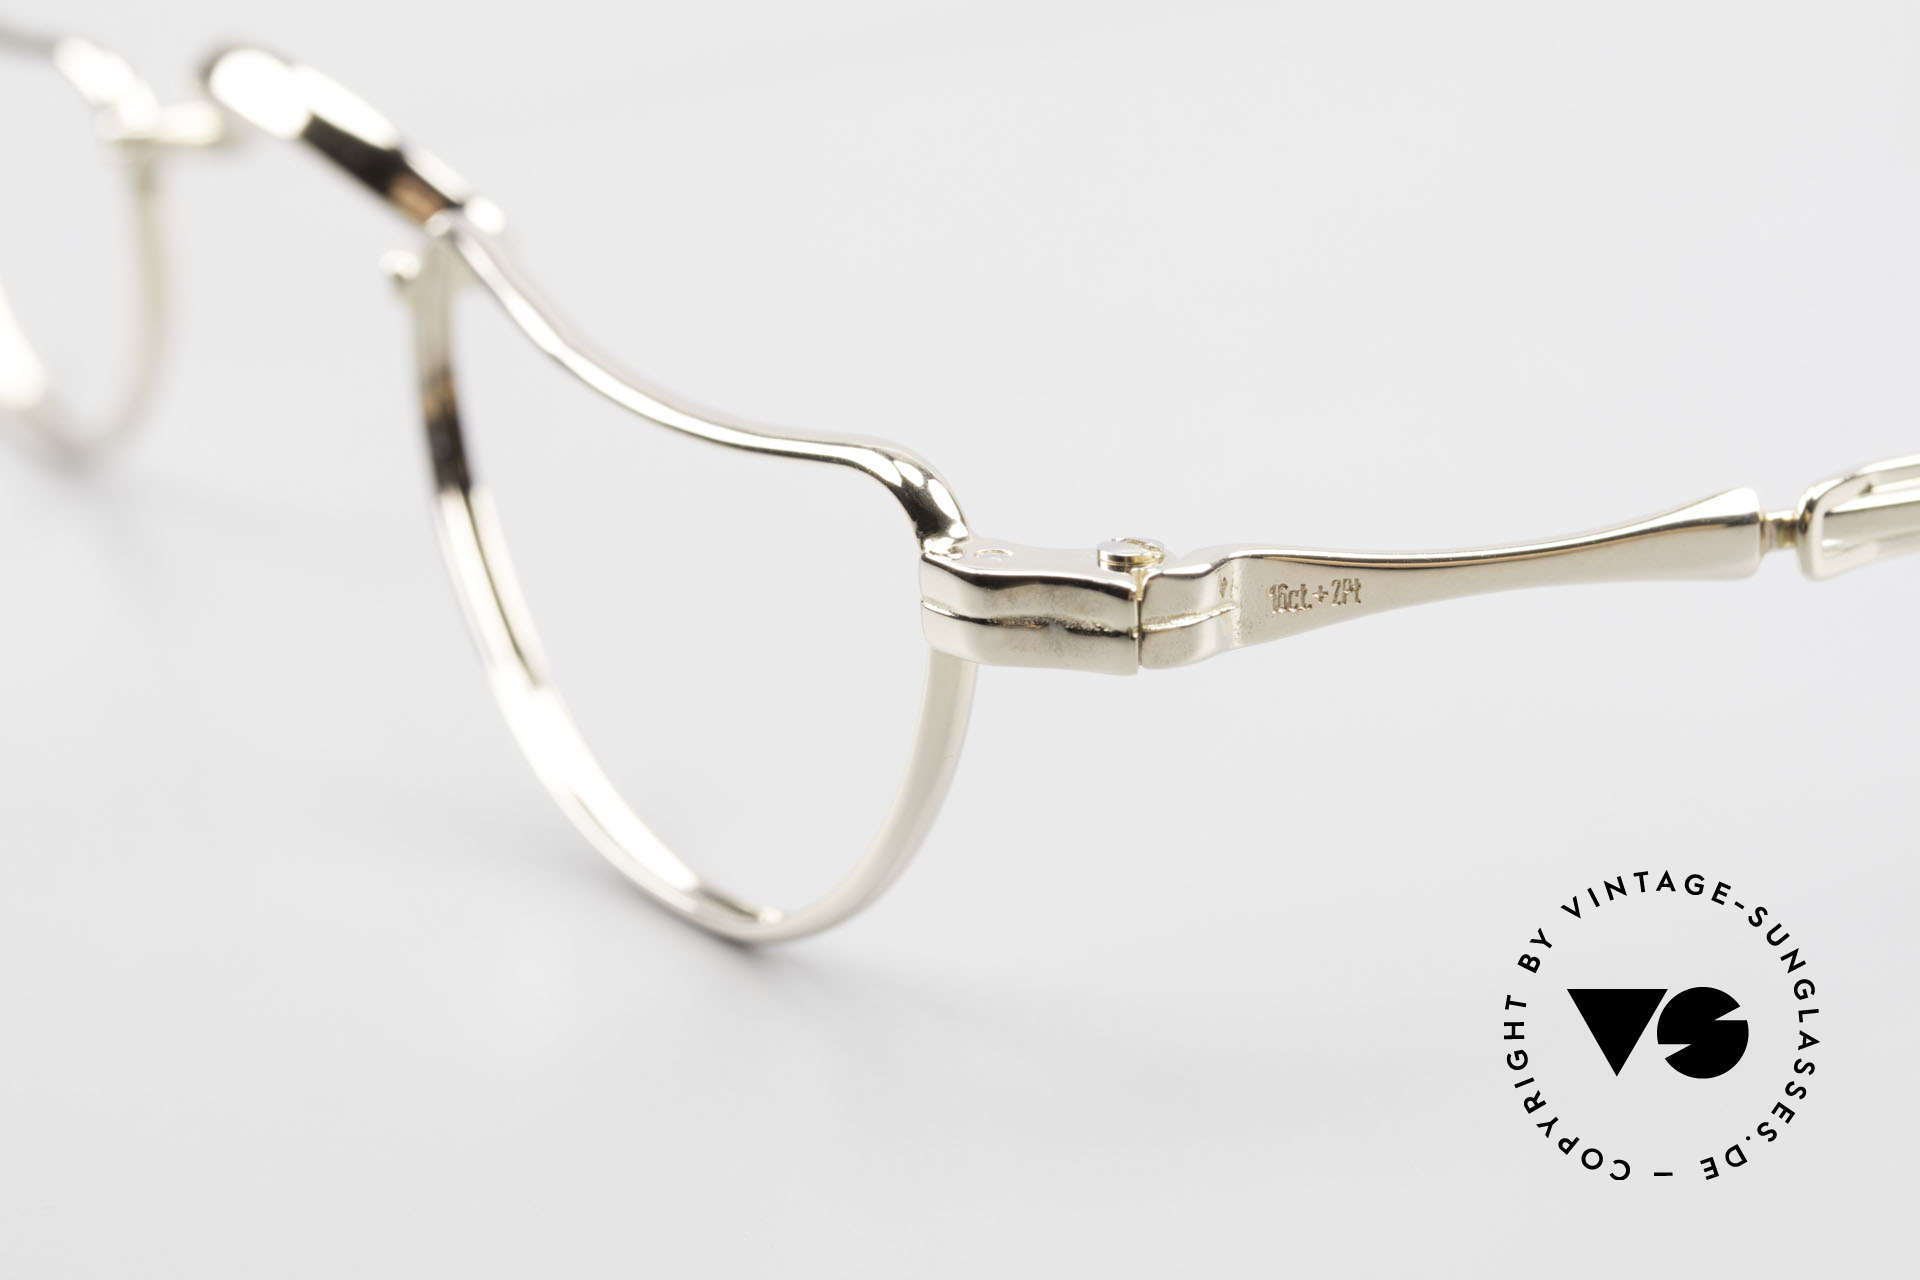 Lunor Goldbrille Solid Gold Glasses 16ct Frame, Lunor company history (only 100pcs were made in 1991), Made for Men and Women